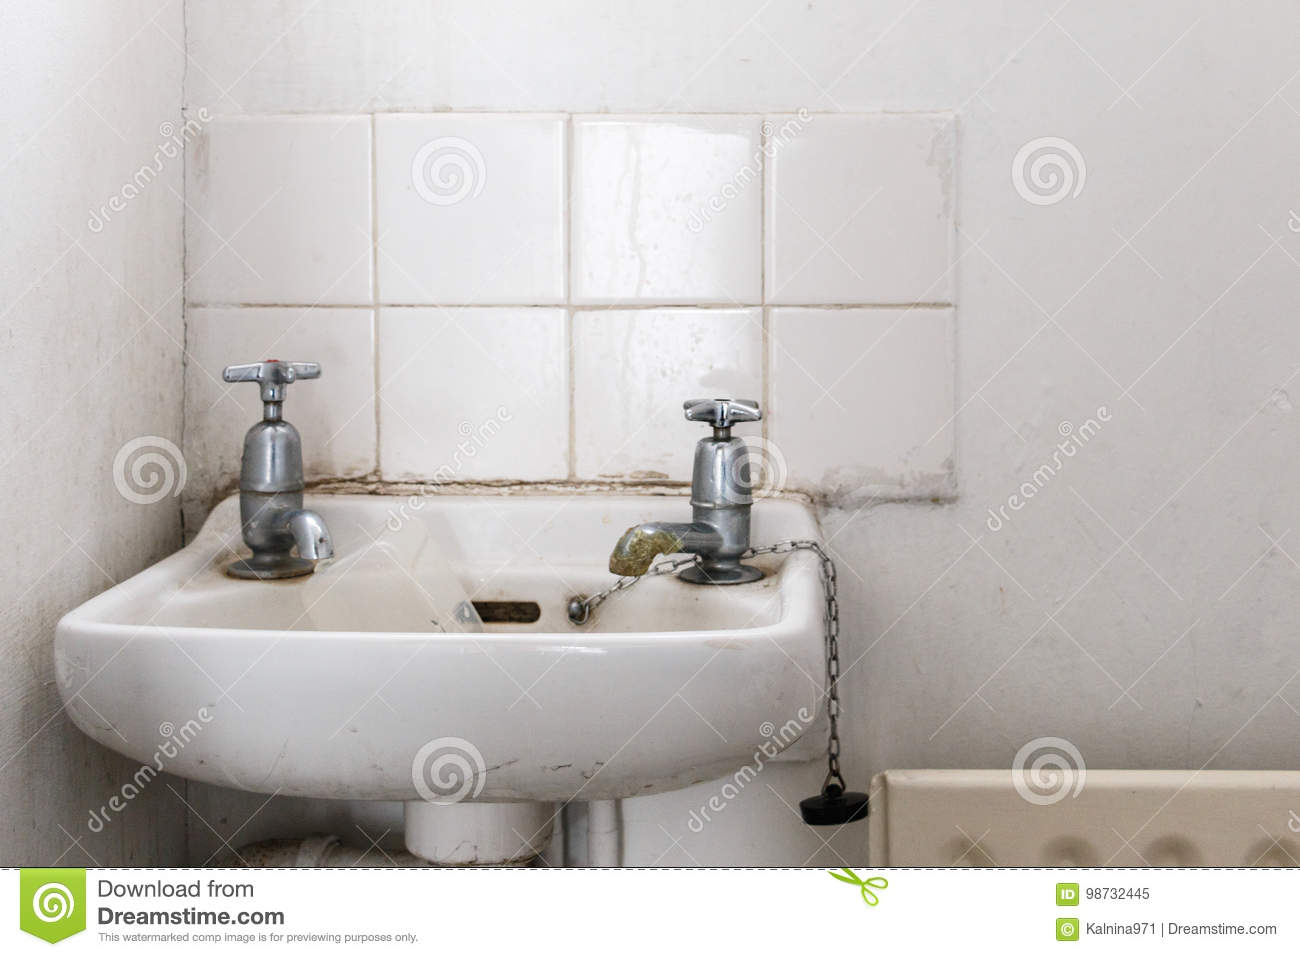 Water Basin With Separate Hot And Cold Water Taps As Used In Bri ...